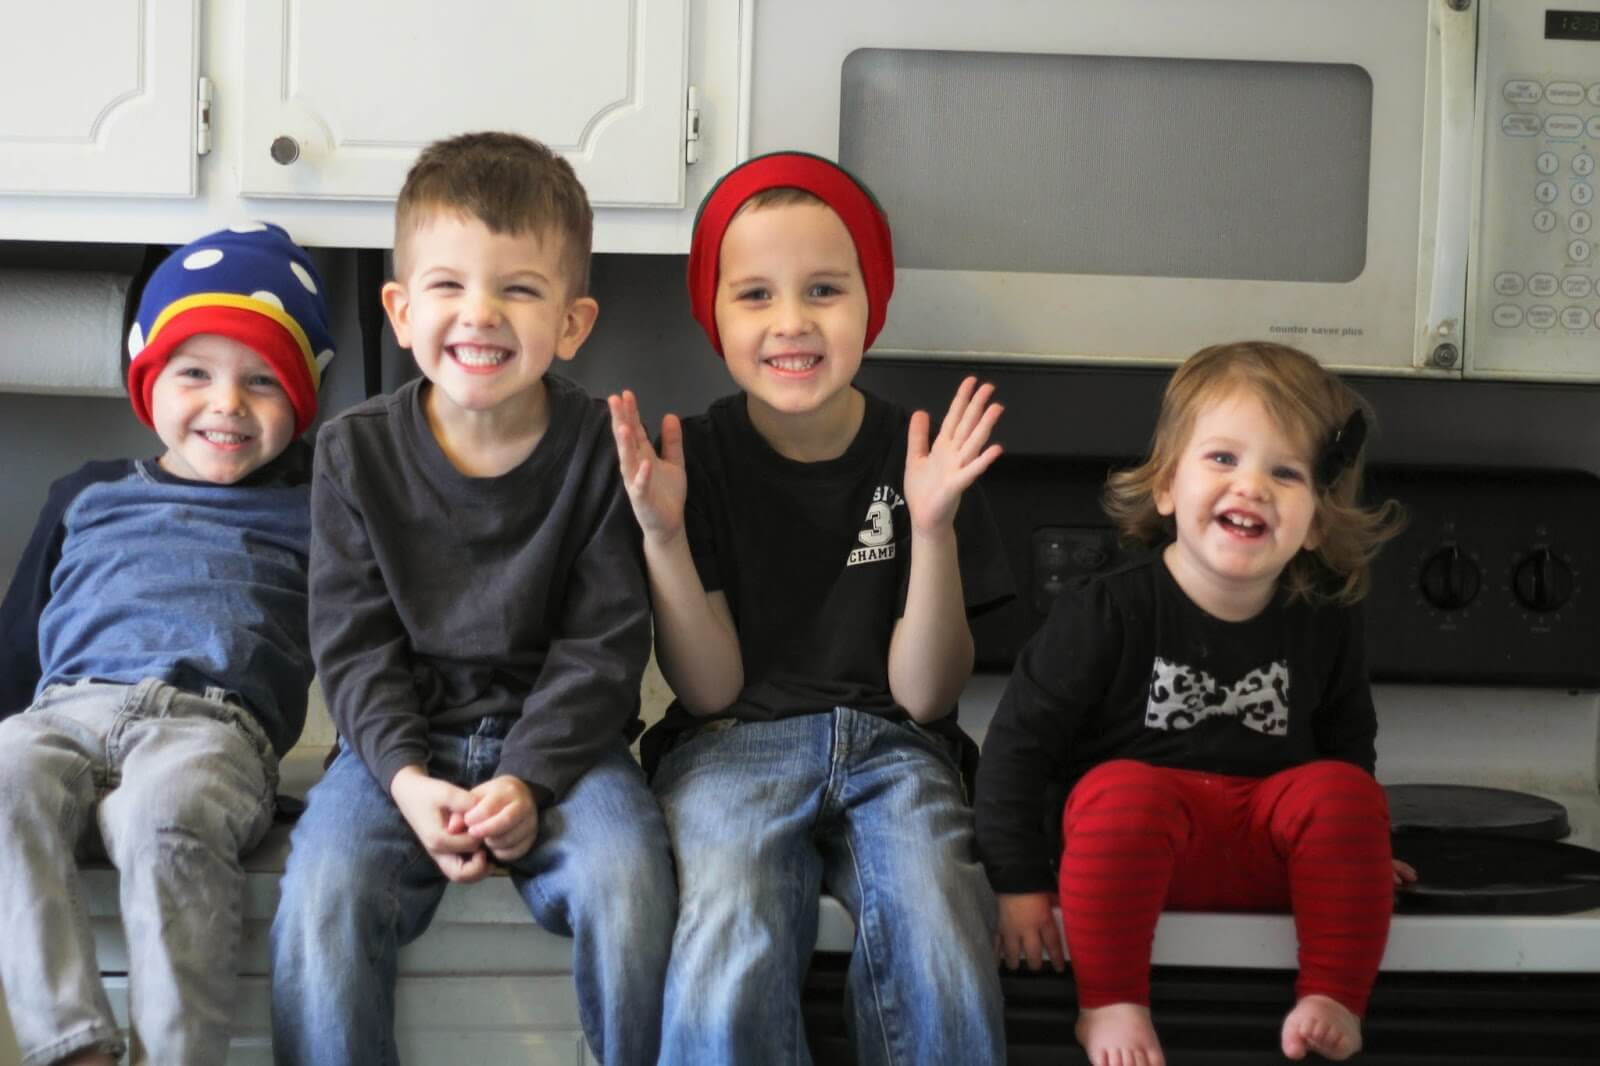 4 kids sitting on counter